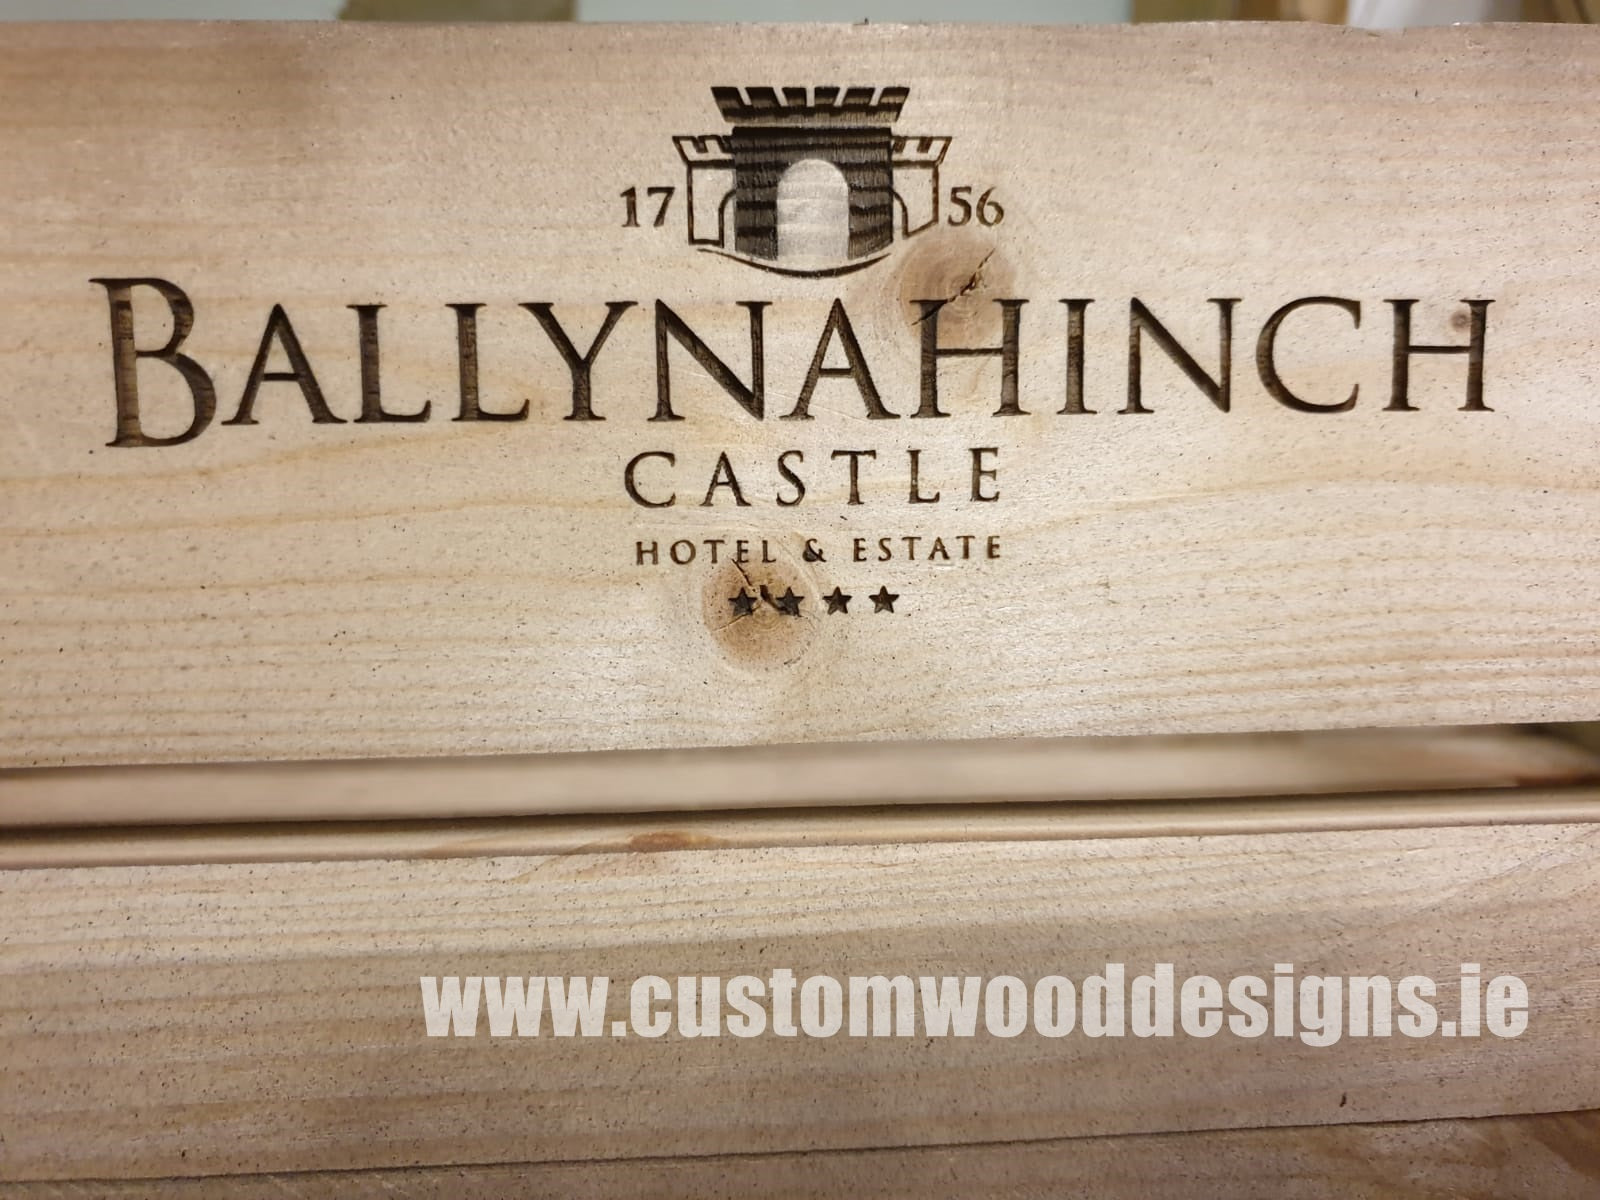 Crates Custom Wood Designs Manufacturer Dublin Ireland wooden timber crates pouint of sale shoip retail display branded crates retail shop hotel product display custom wood designs laser engraving mass production   (3)